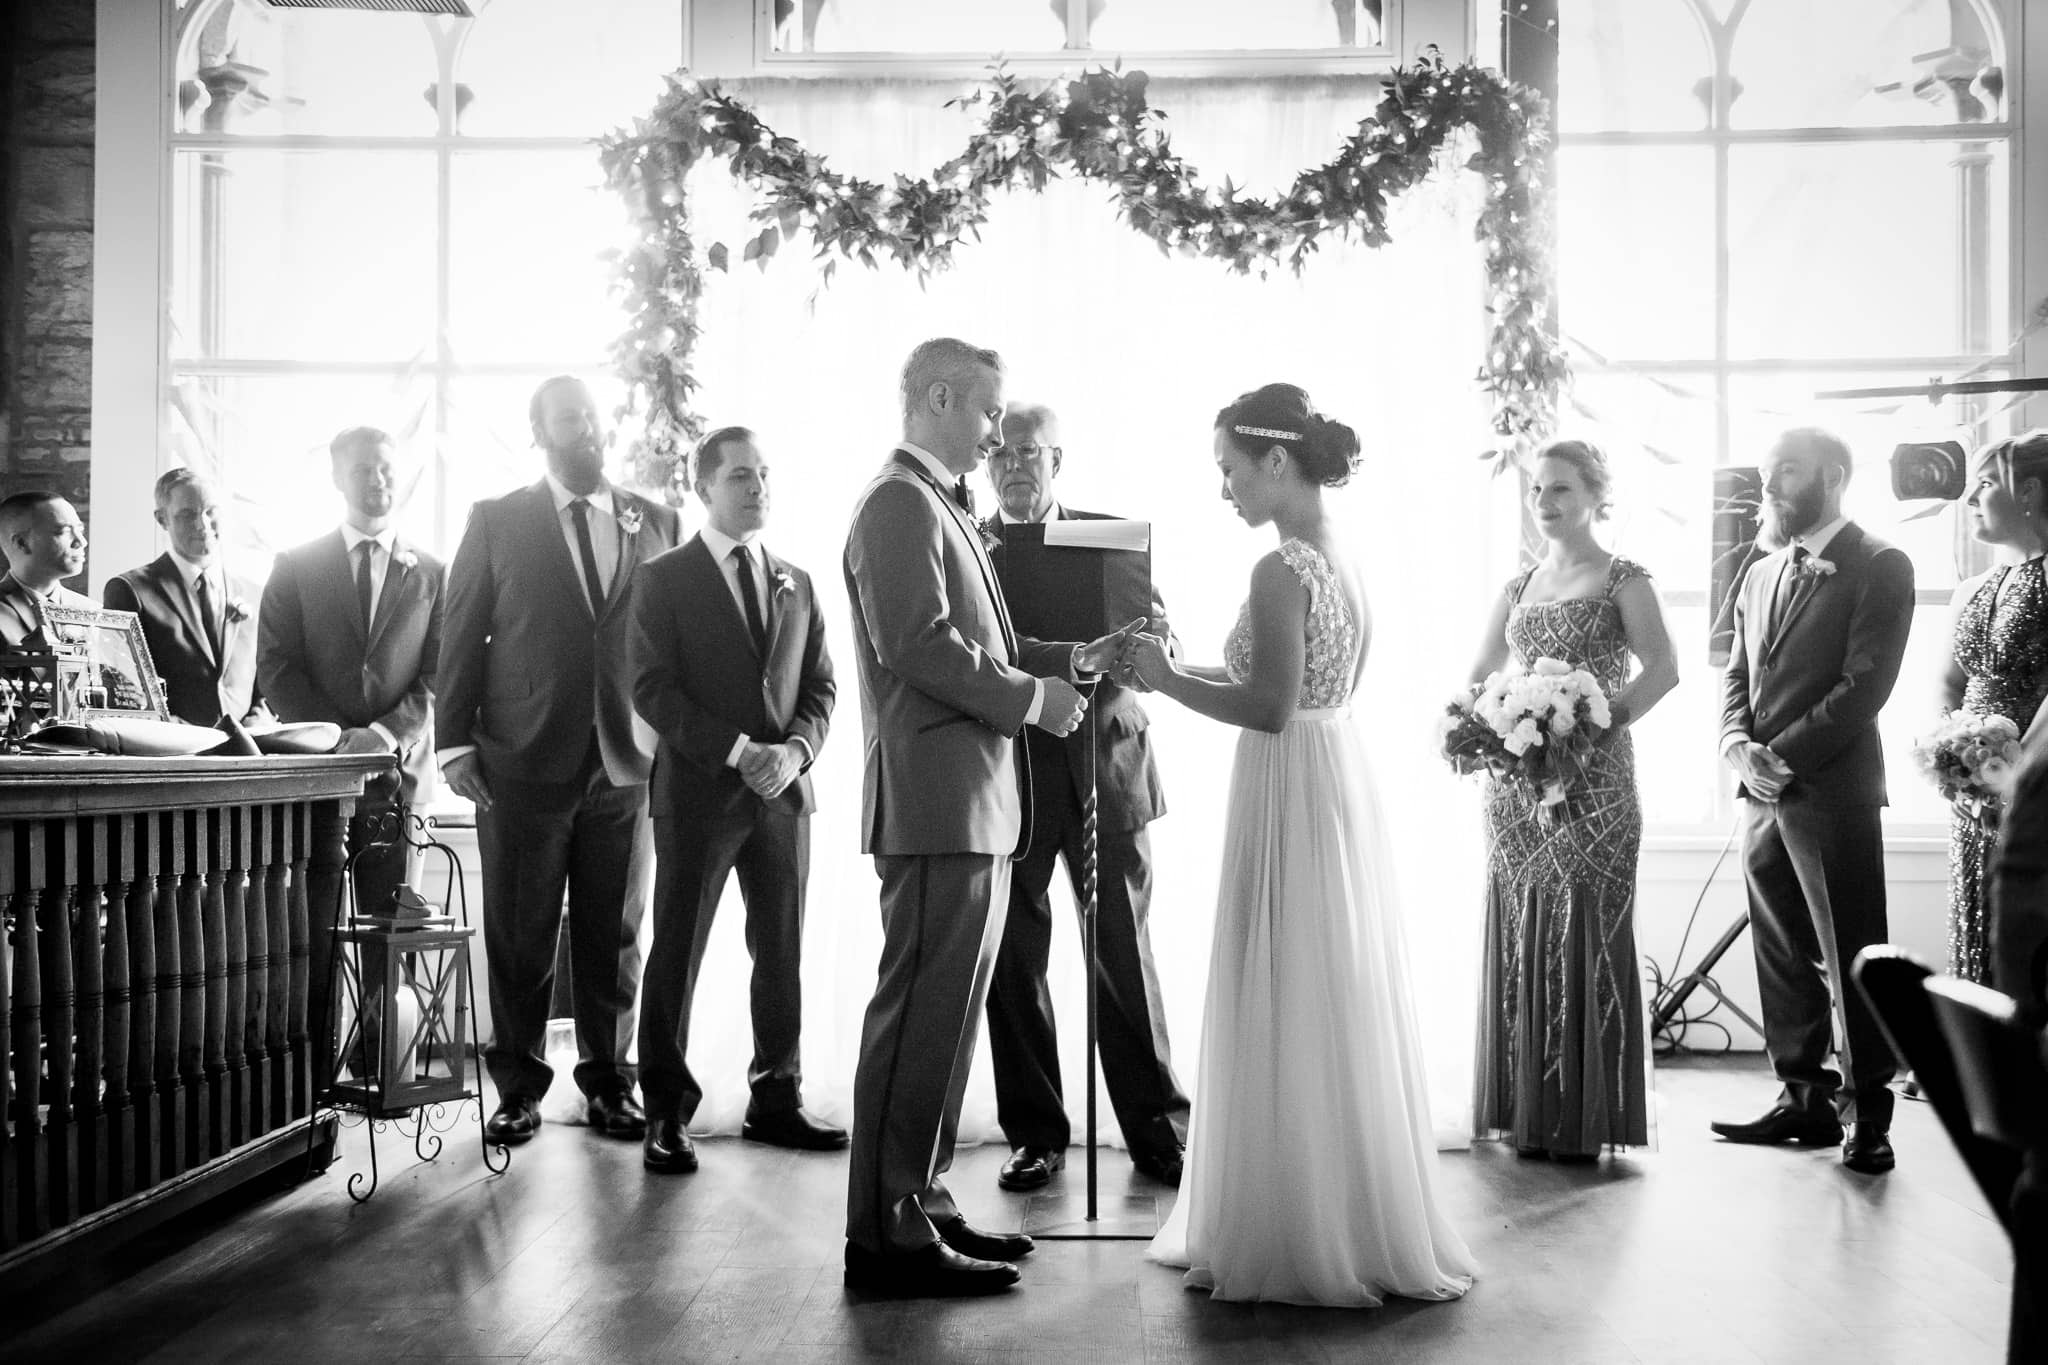 Wedding Ring Ceremony in the River Room at Aster Cafe